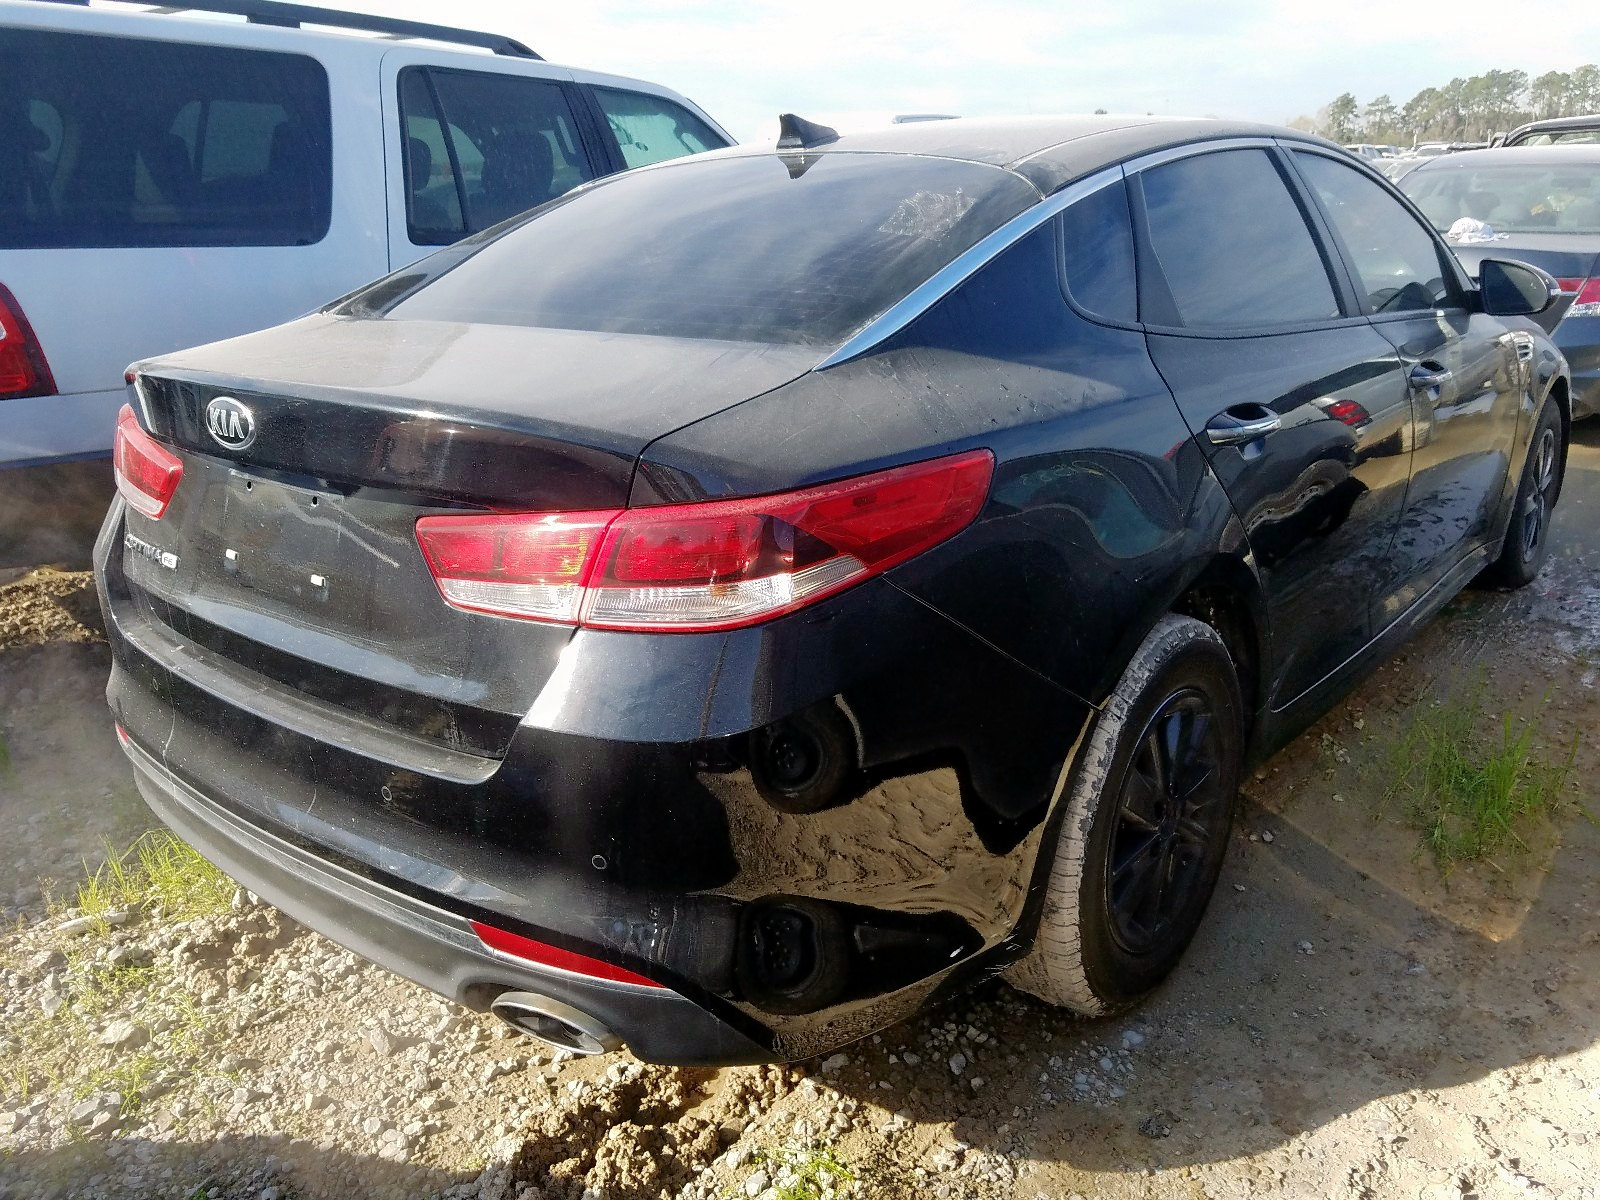 5XXGT4L34JG217179 - 2018 Kia Optima Lx 2.4L rear view